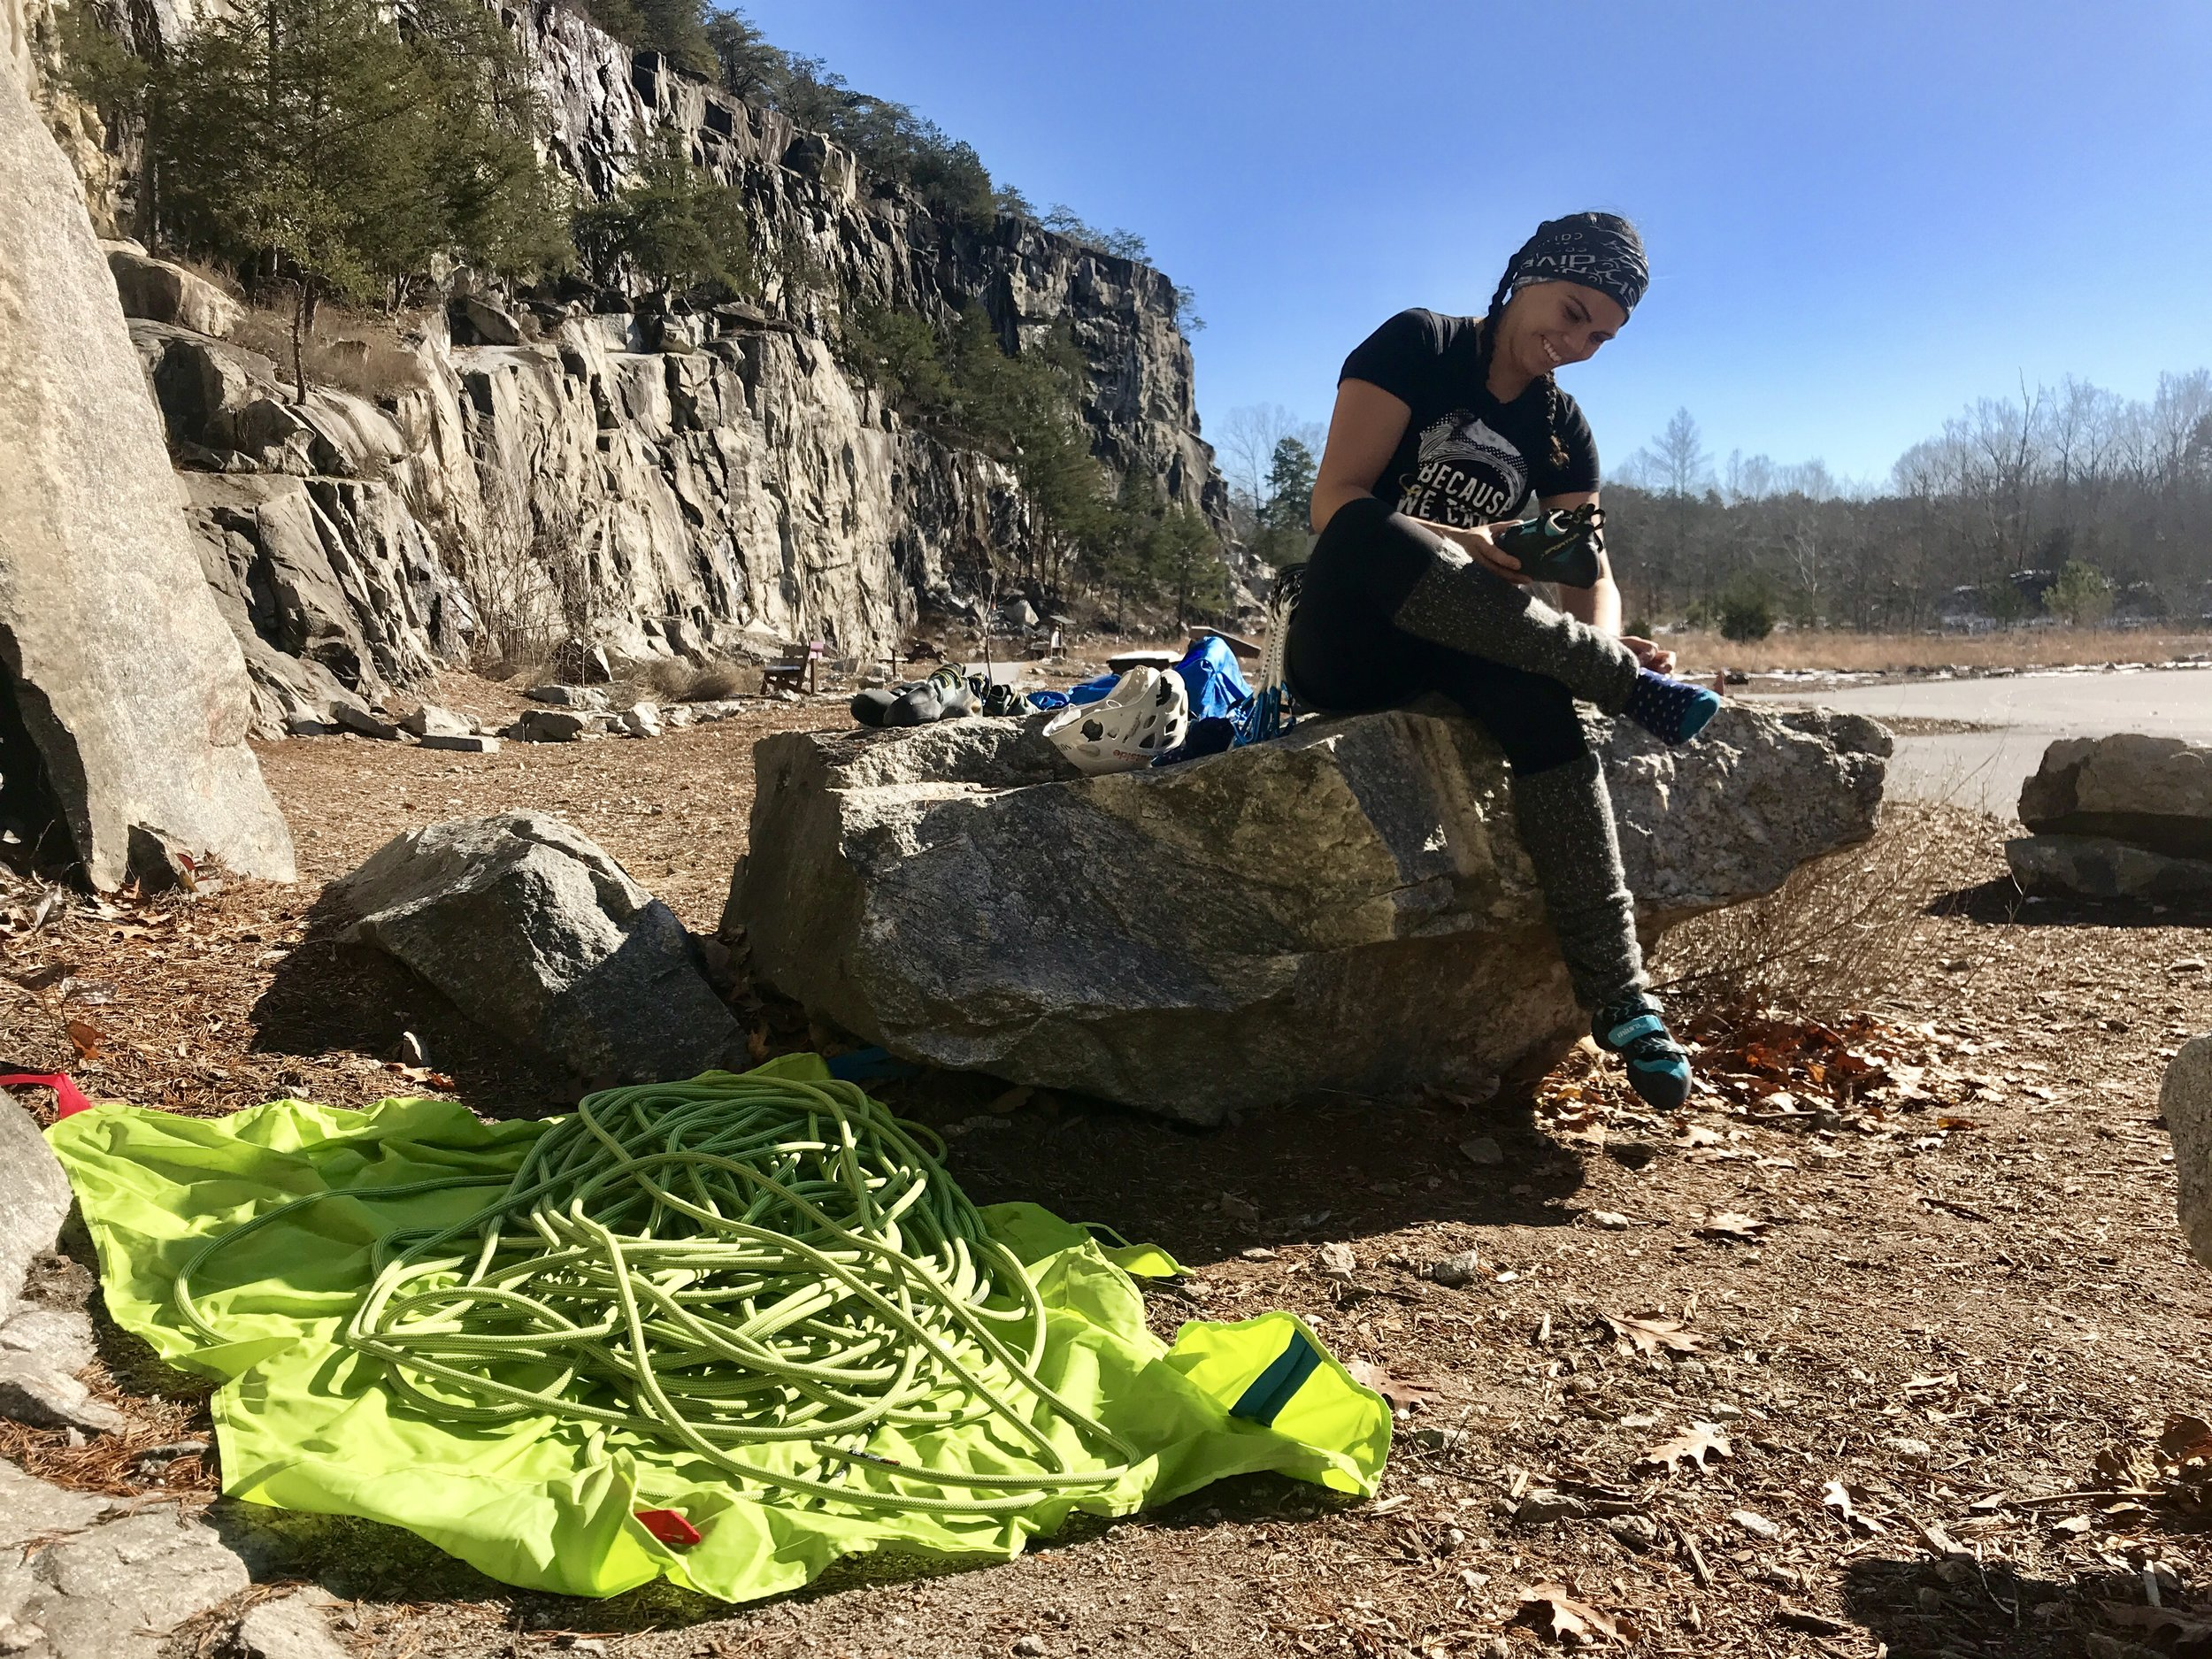 Climbing at Rockyface Mountain Recreation Area in Hiddenite, North Carolina